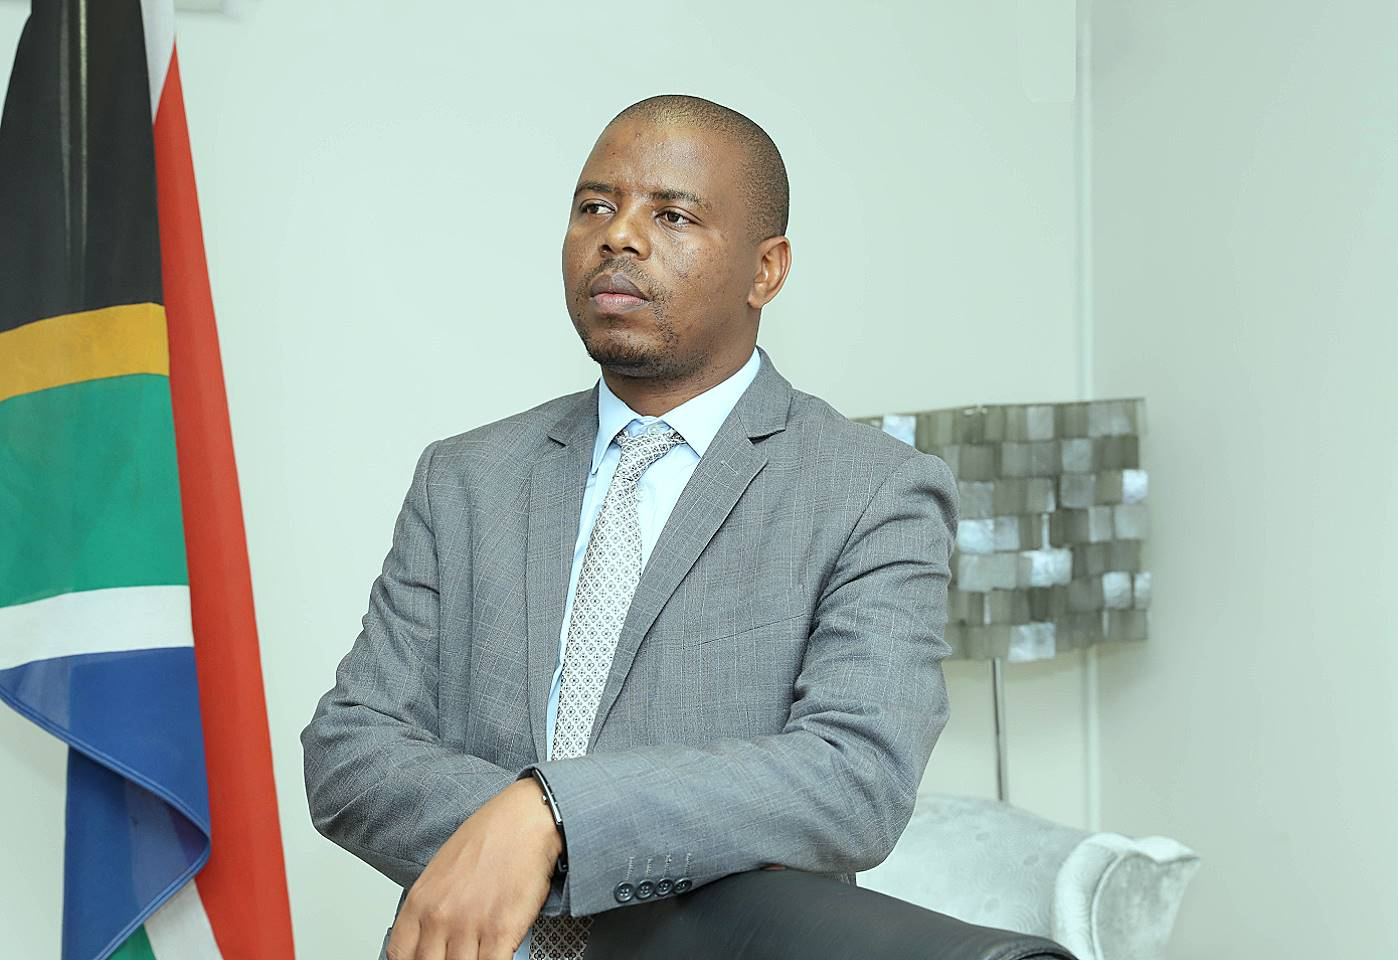 The newly appointed MEC for Cooperative Governance and Traditional Affairs (Cogta), Sipho Hlomuka, wants to see stability in municipalities.